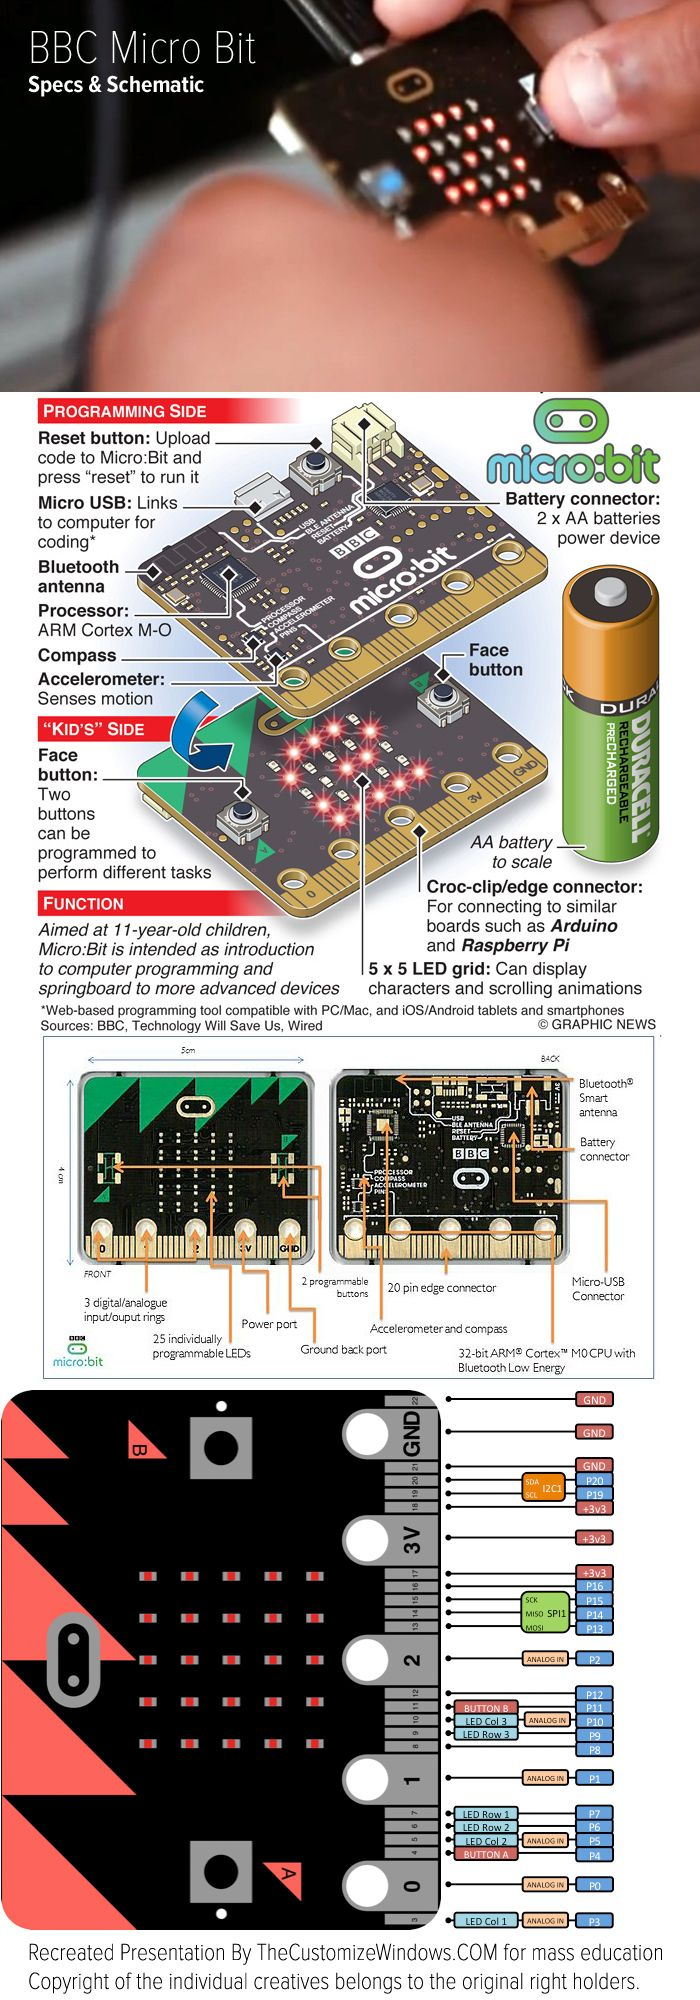 BBC Micro Bit is an Embedded System For Learning Coding in UK Like We Did on BBC Microcomputers. Let Us Look at the Official Specs